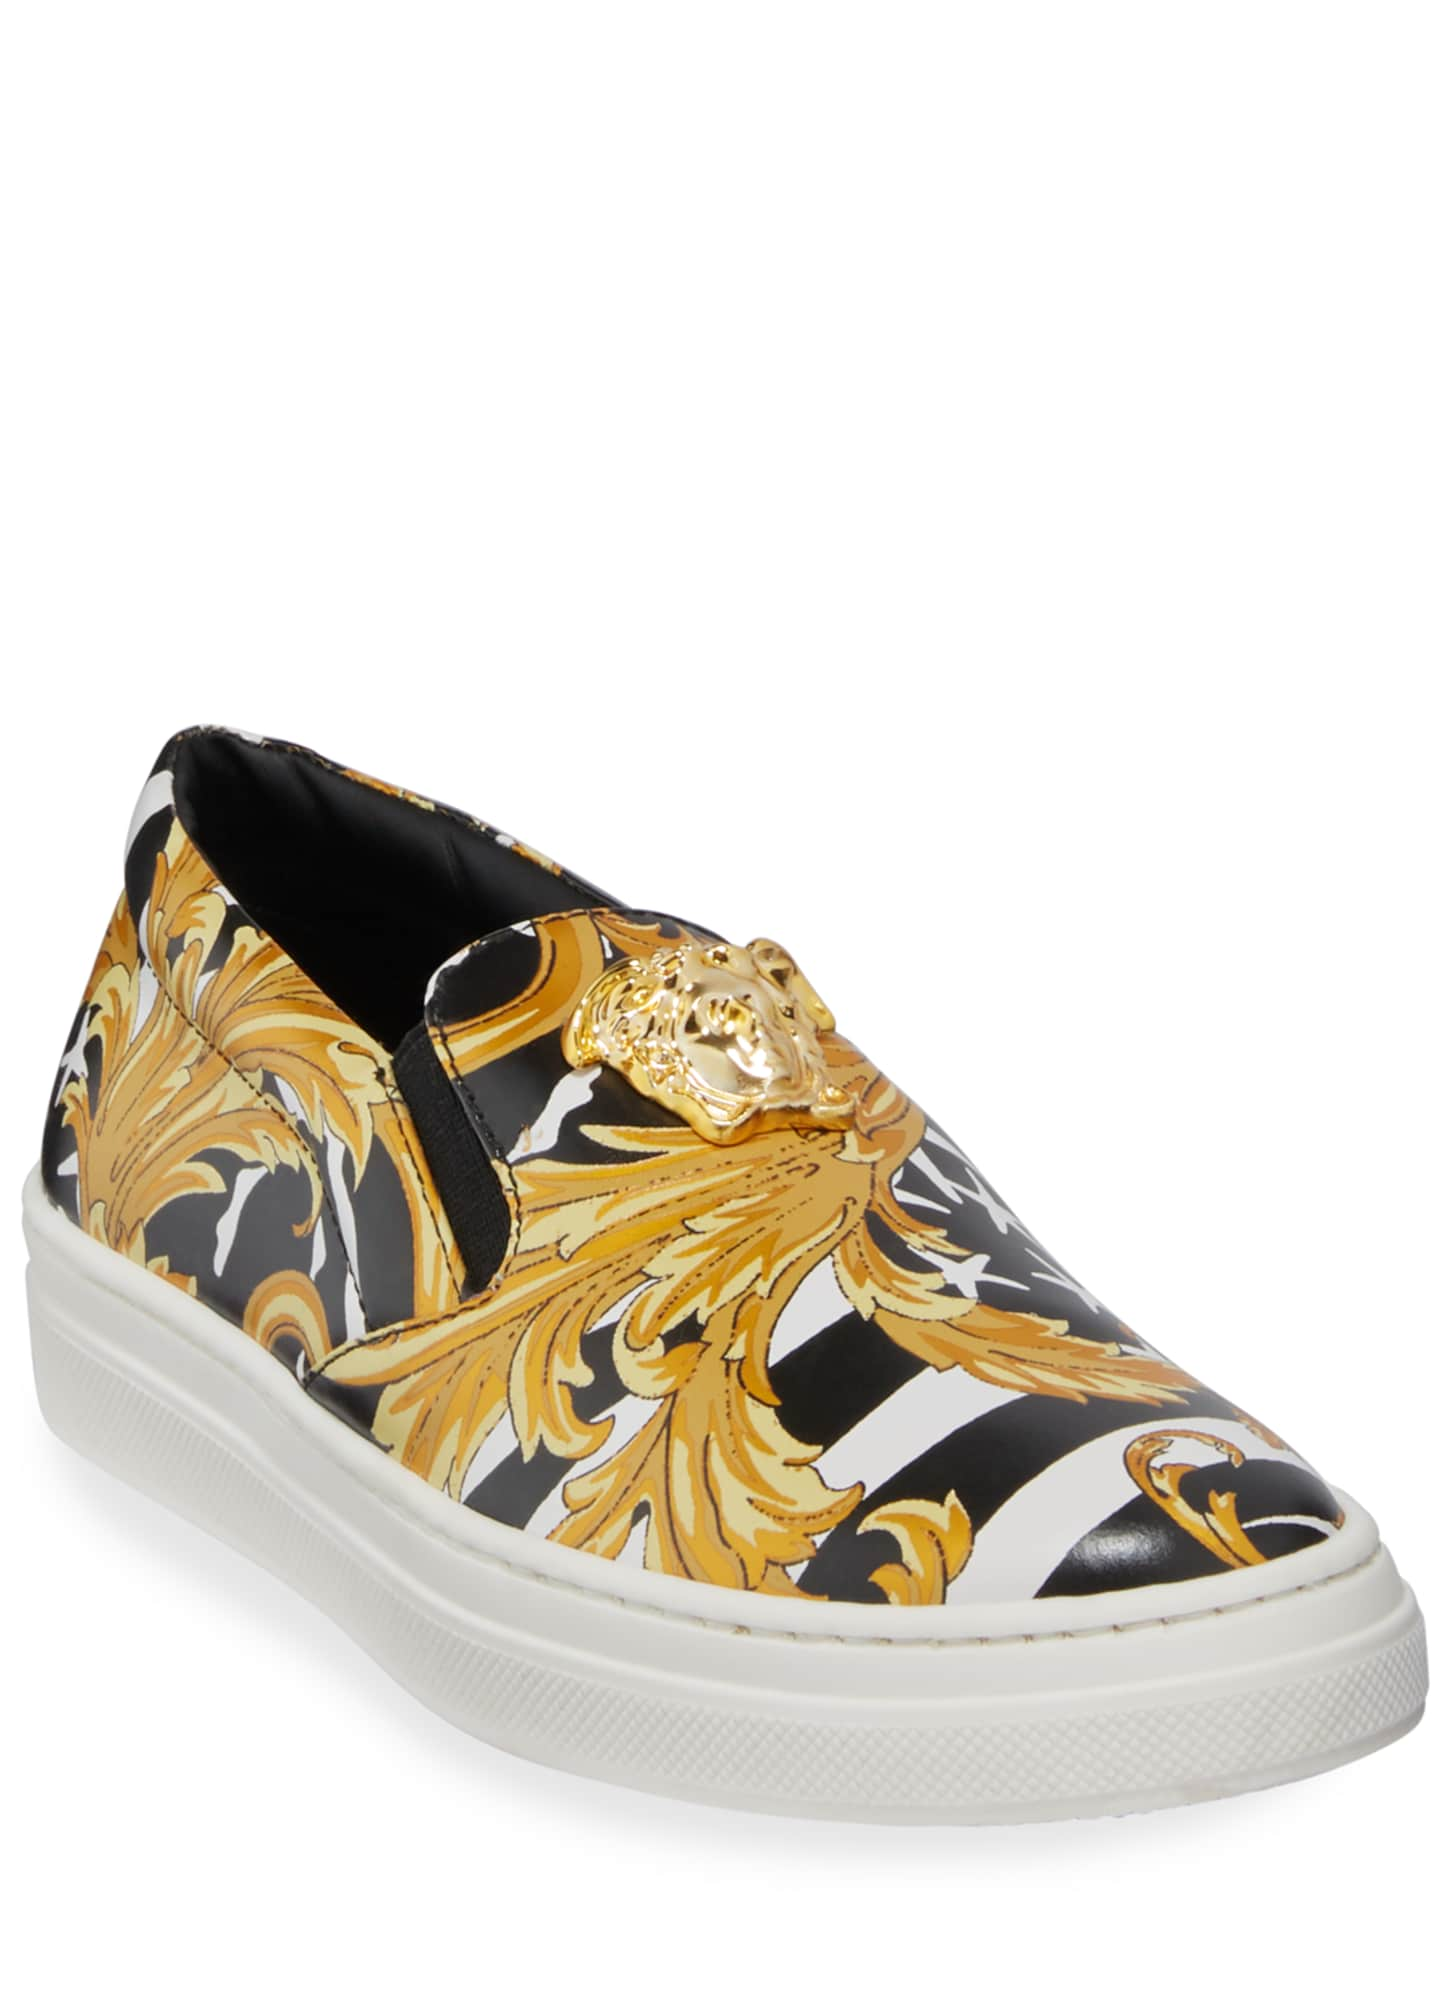 Versace Barocco Print Slip-On Sneakers, Big Kids